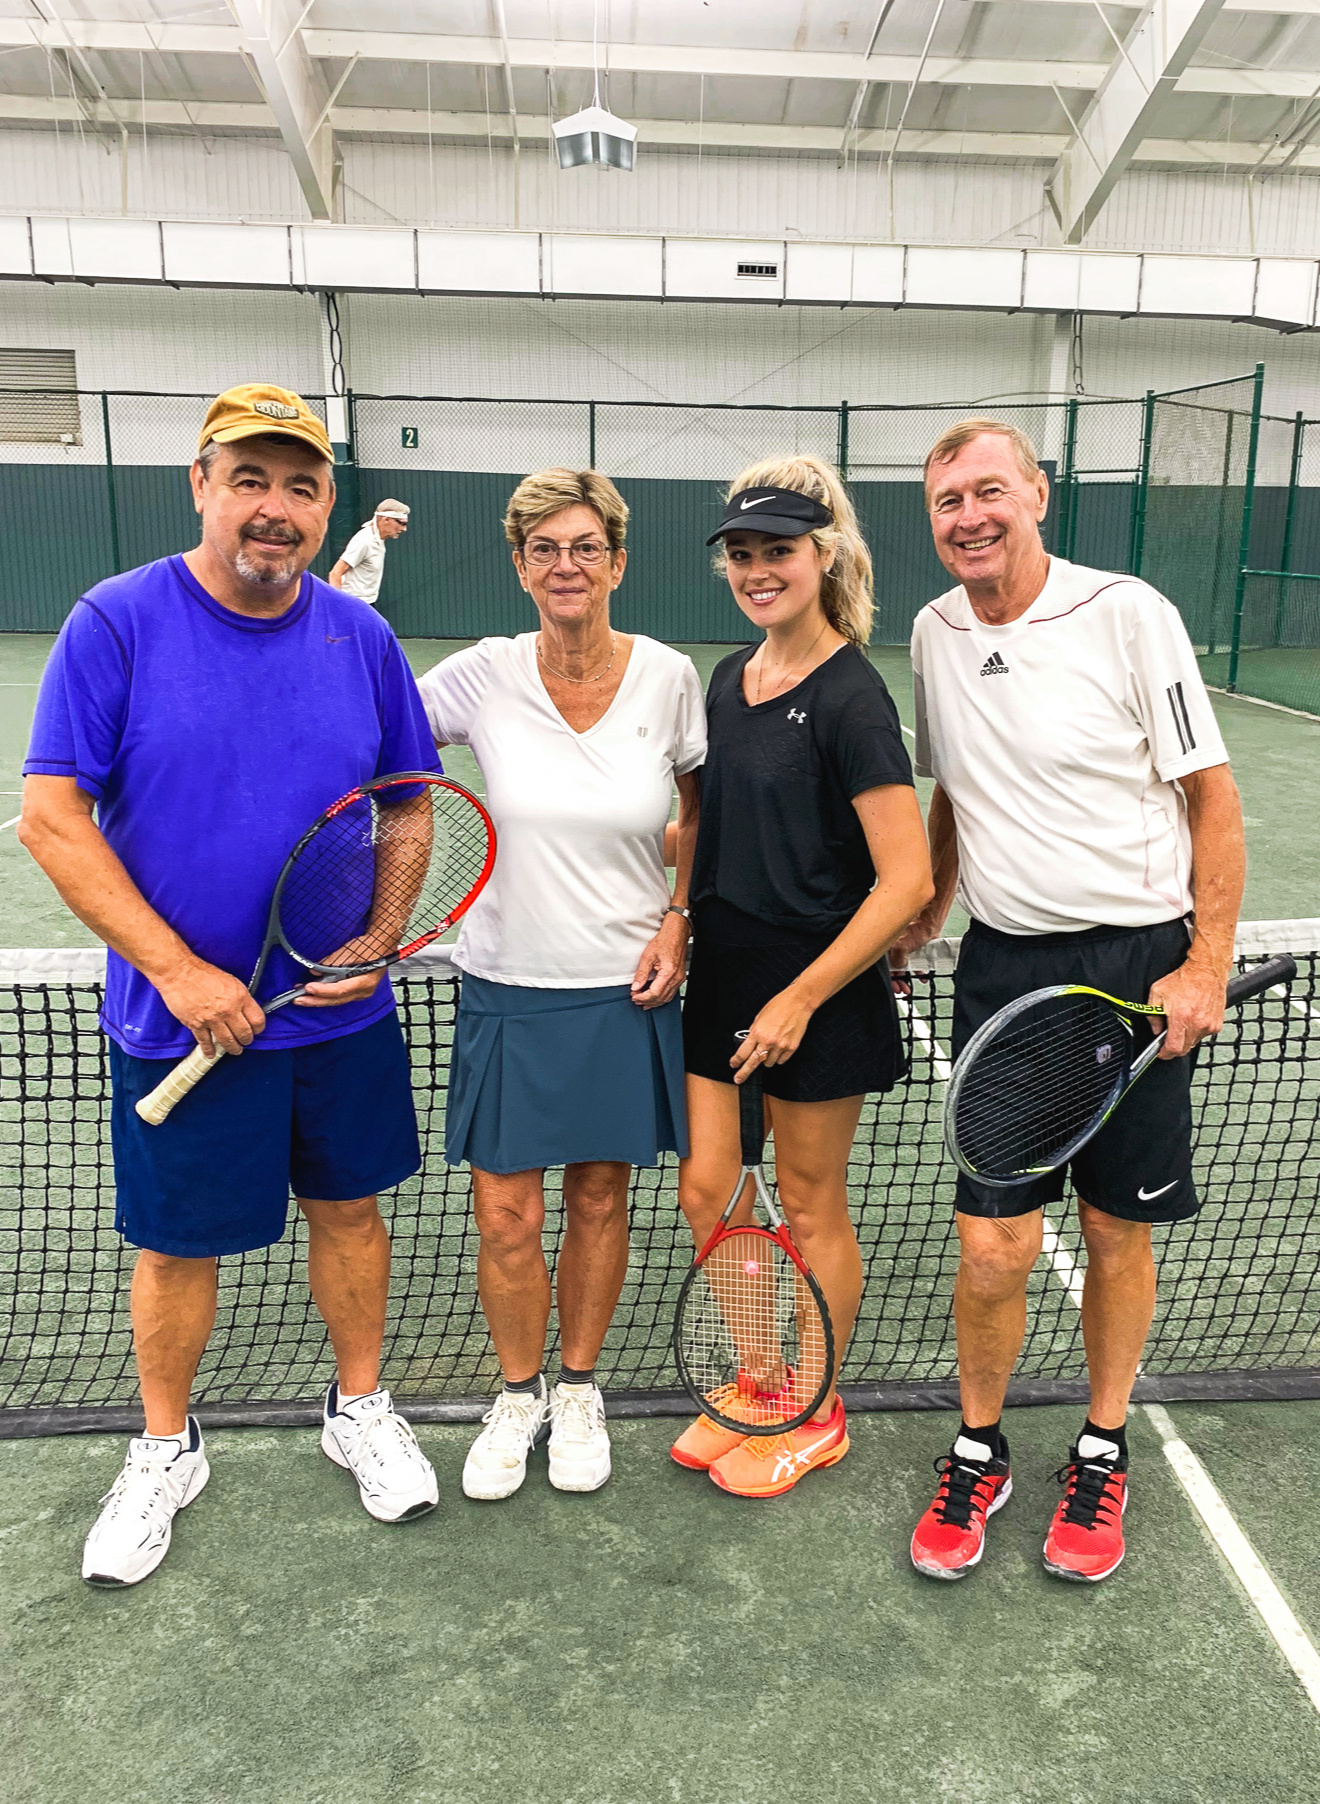 winston salem, North Carolina, indoor tennis, doubles, fitness, simply taralynn, day trip, fun